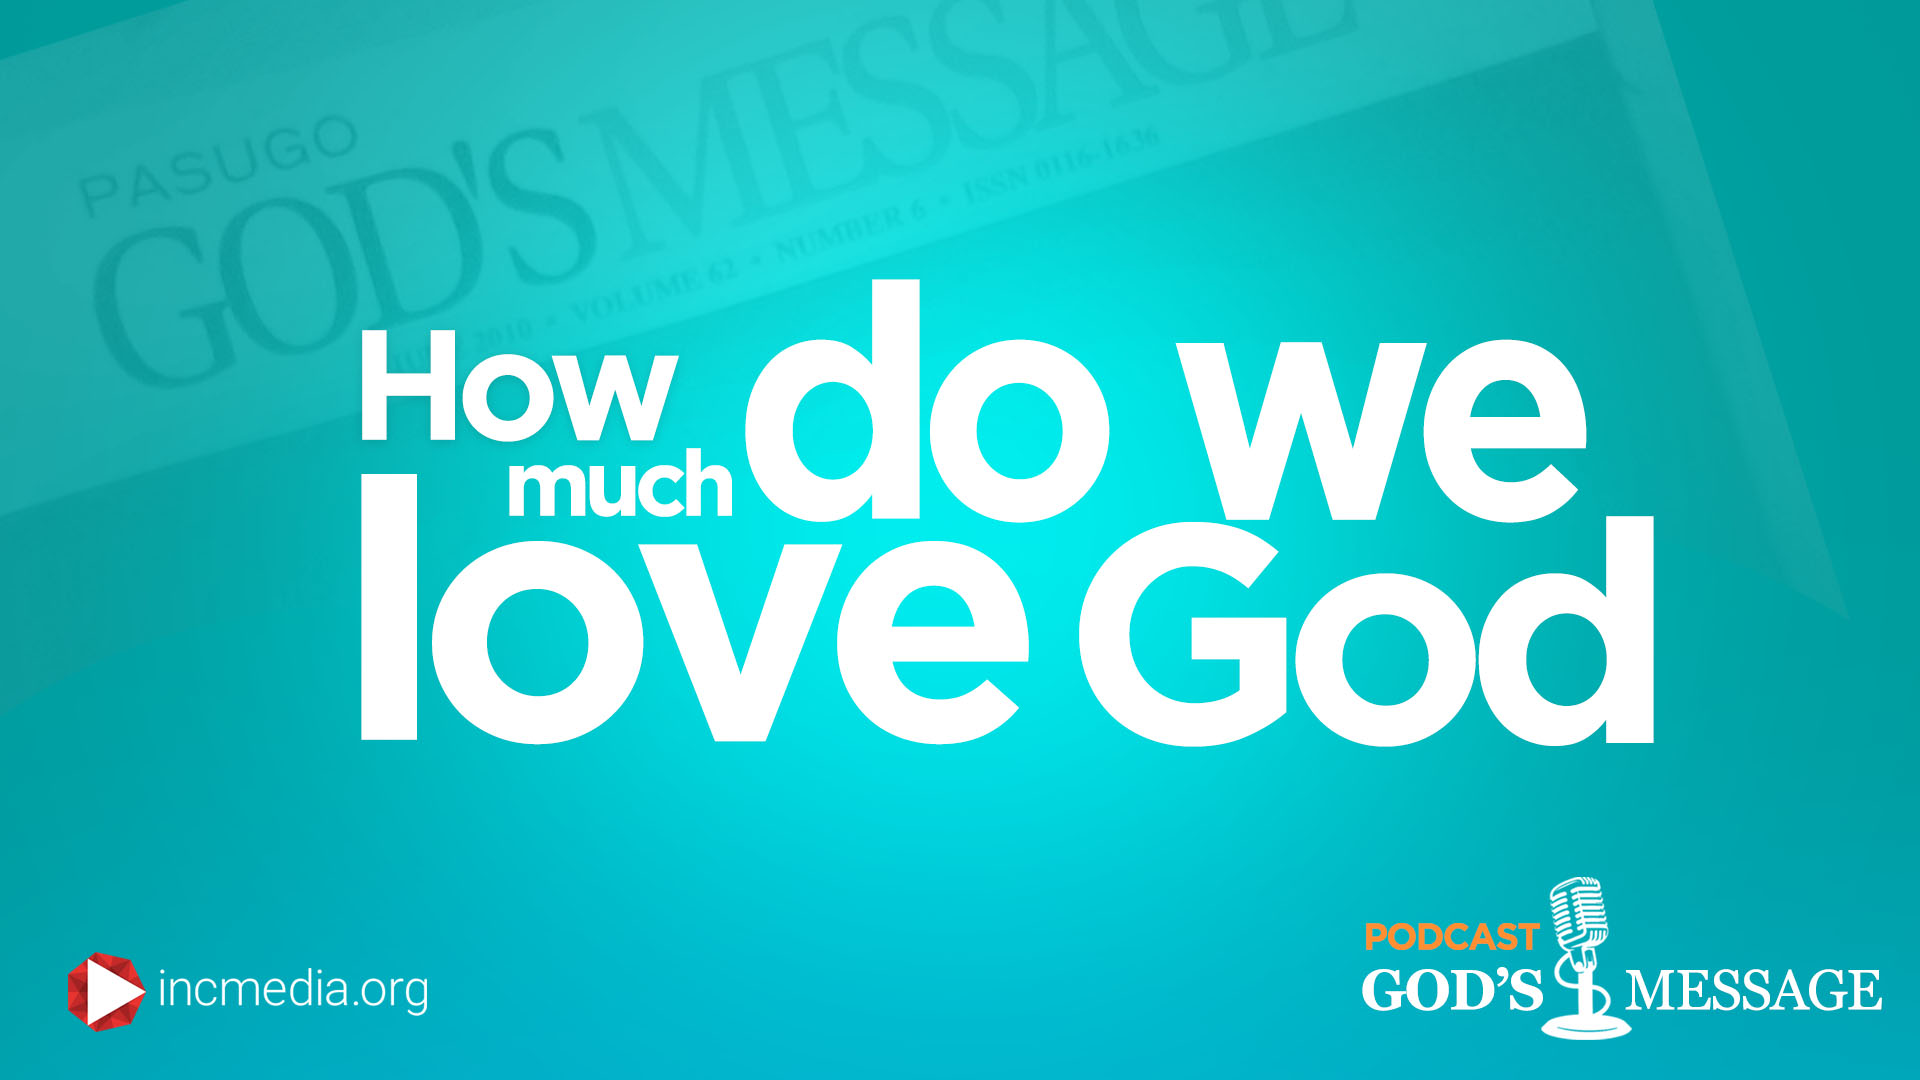 How Much Do We Love God?